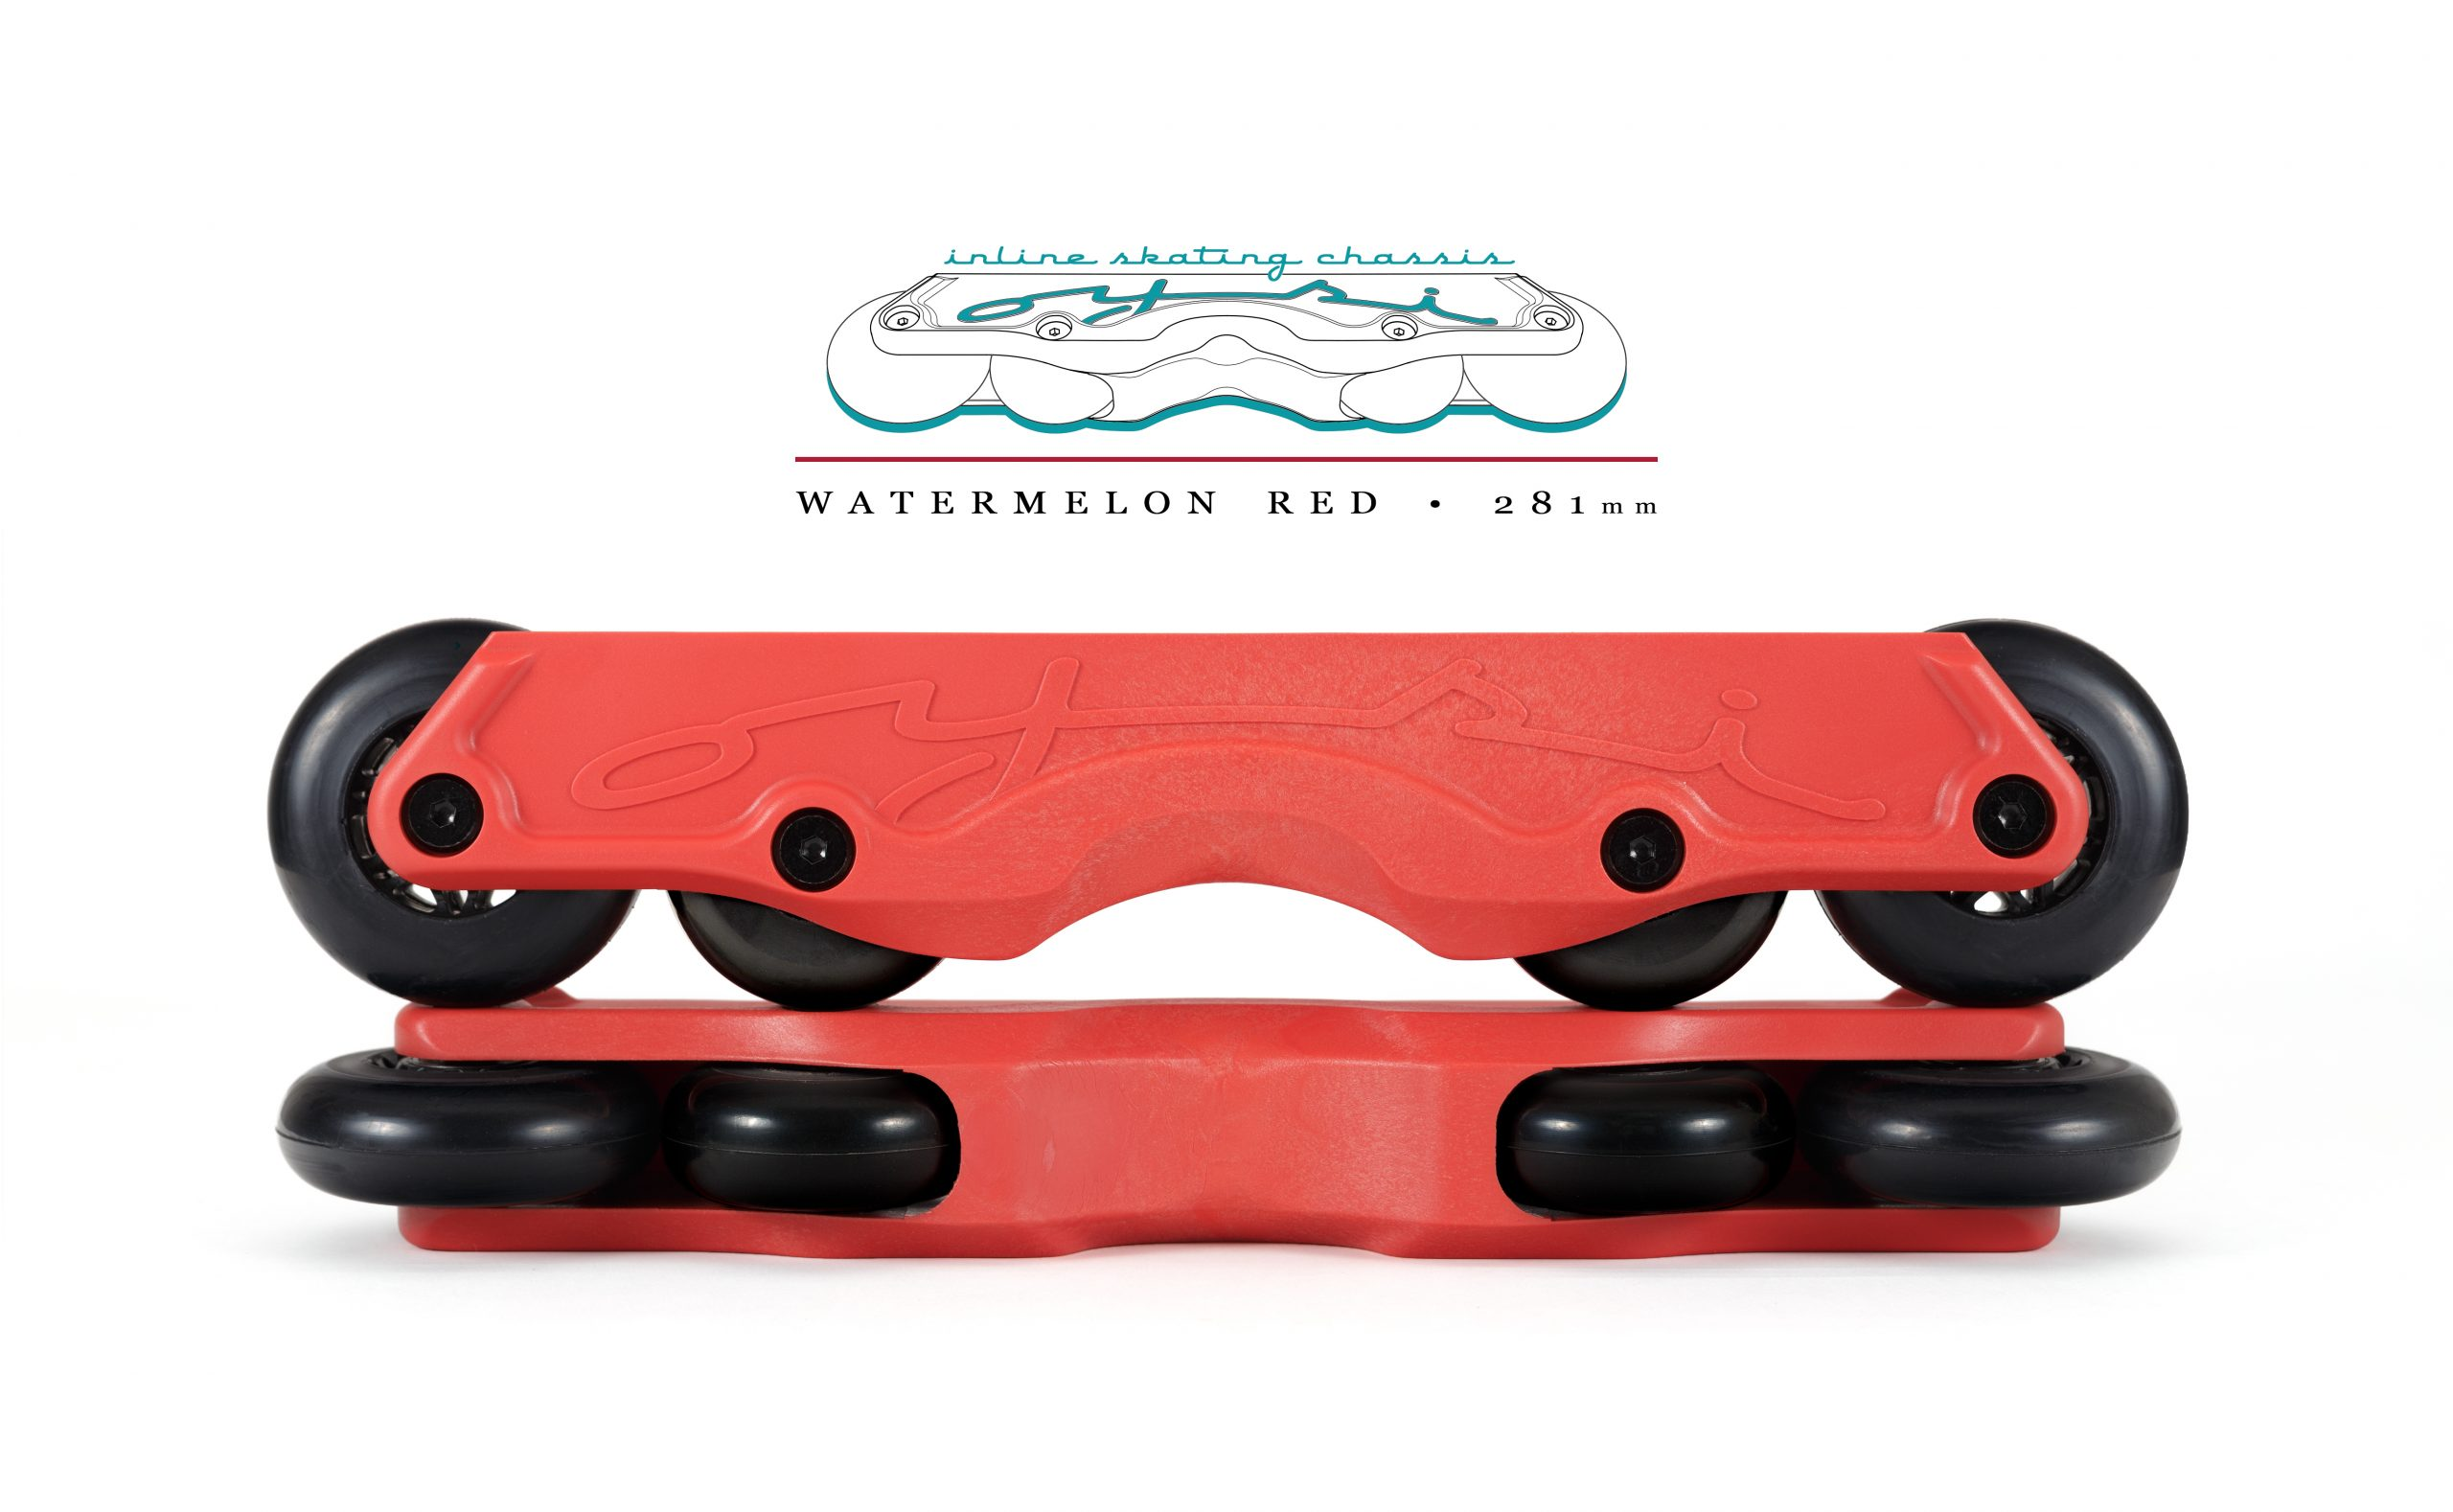 OISC Oysi Inline Skating Chassis 72mm  Watermelon Red